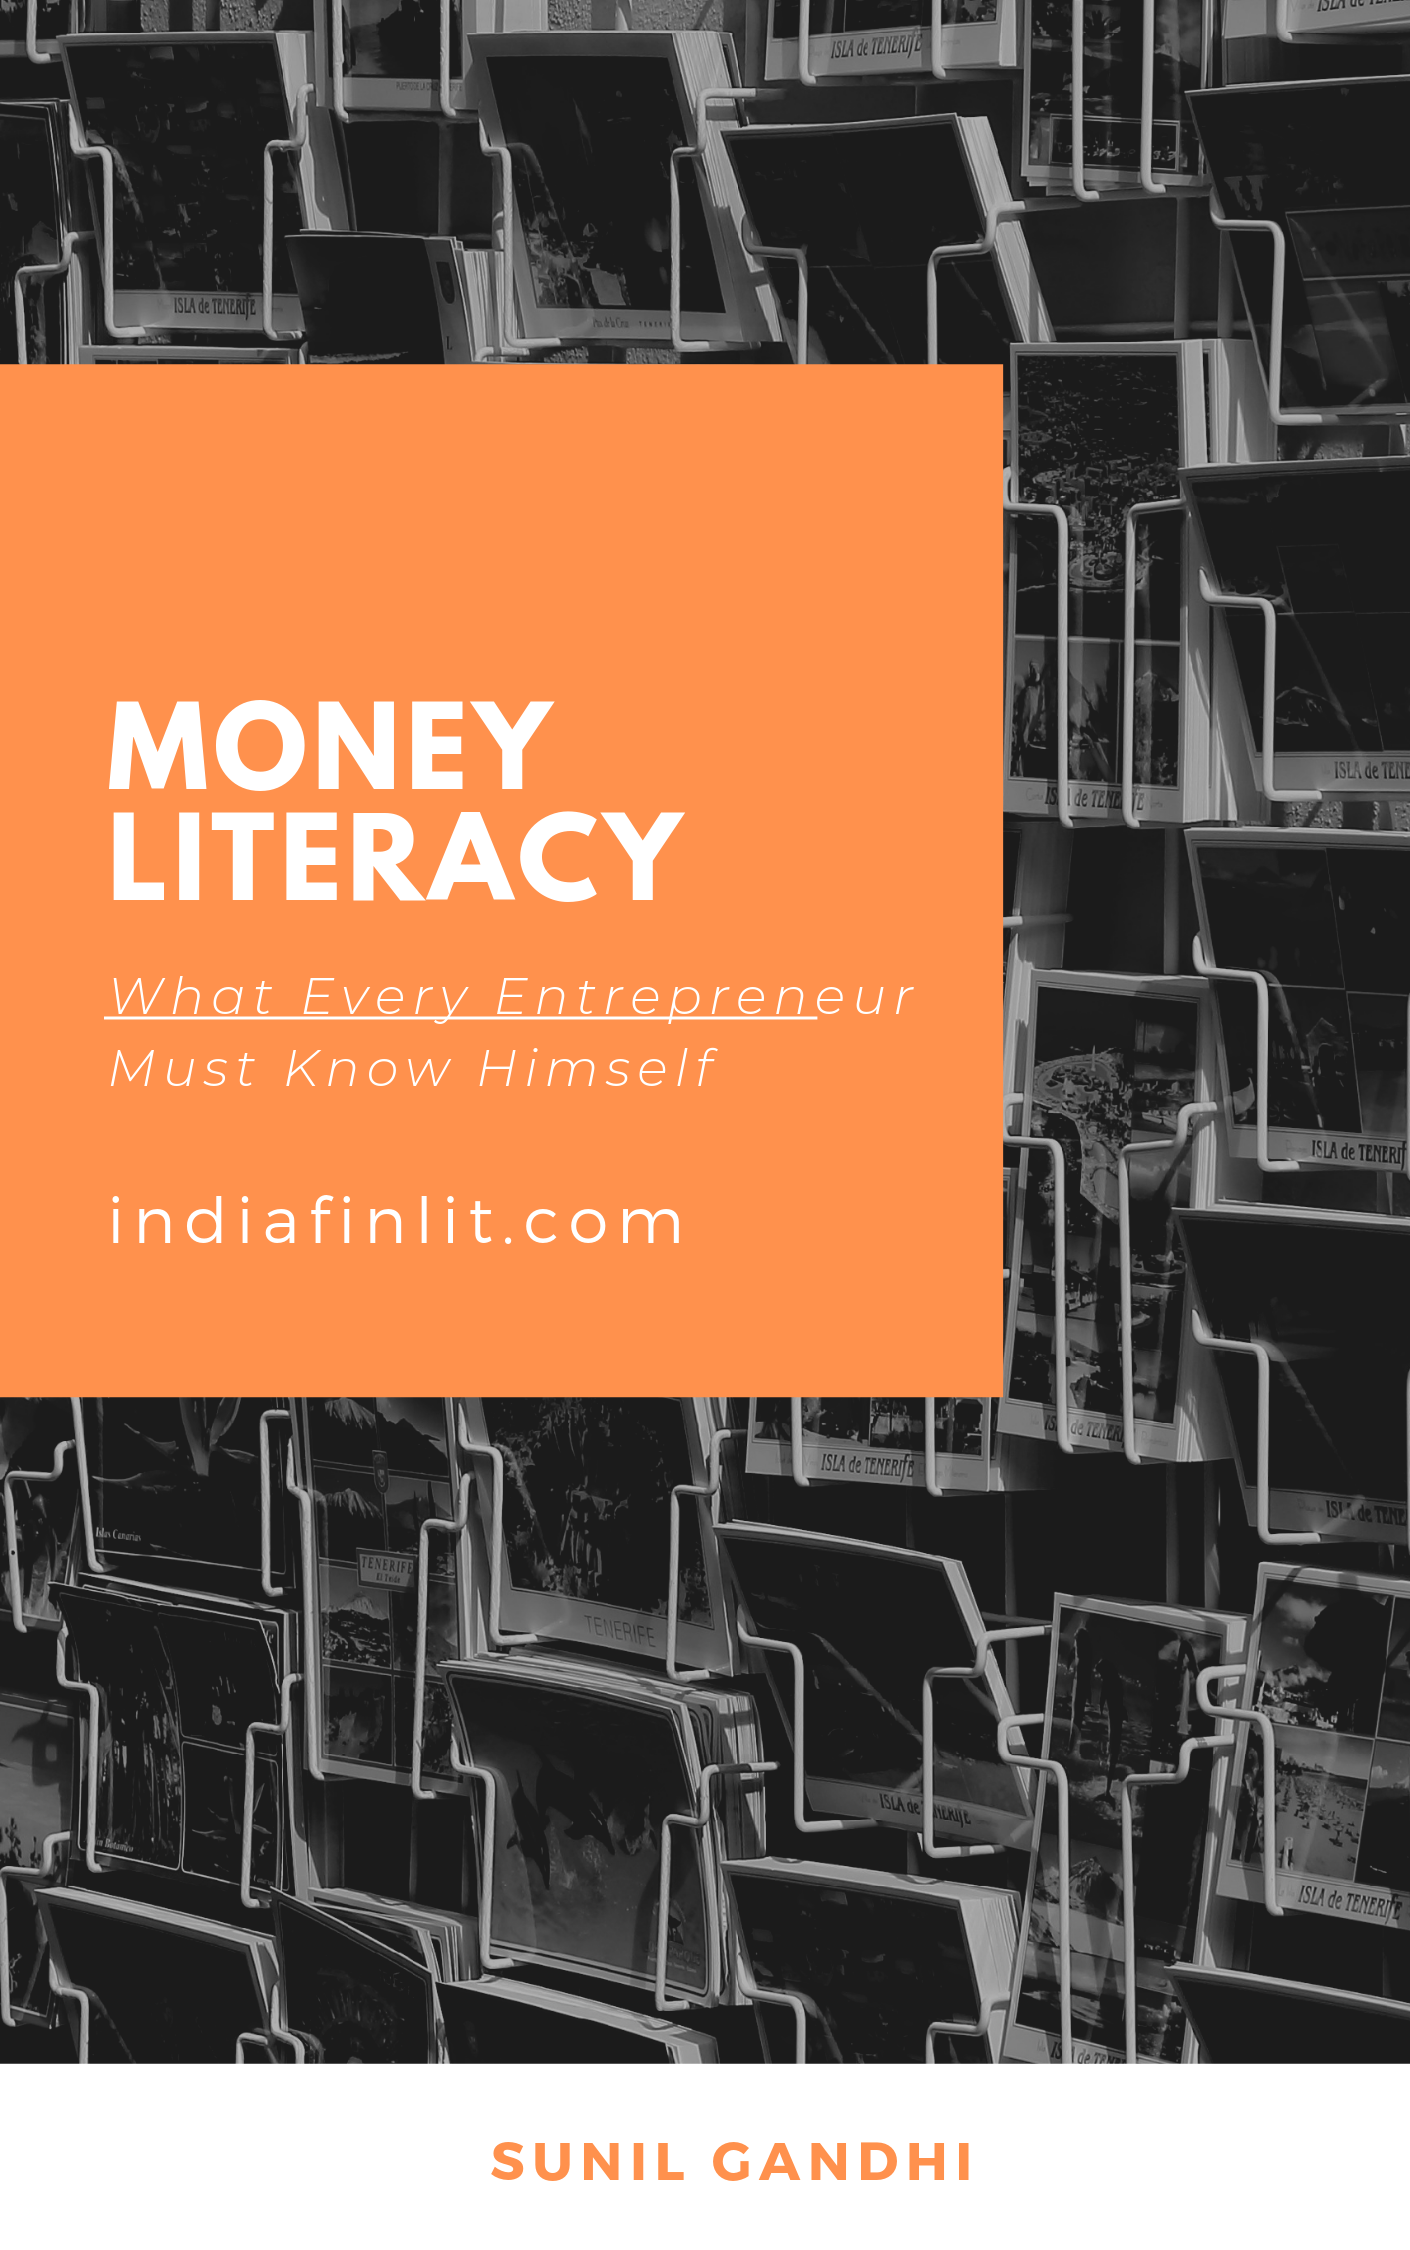 Money Literacy